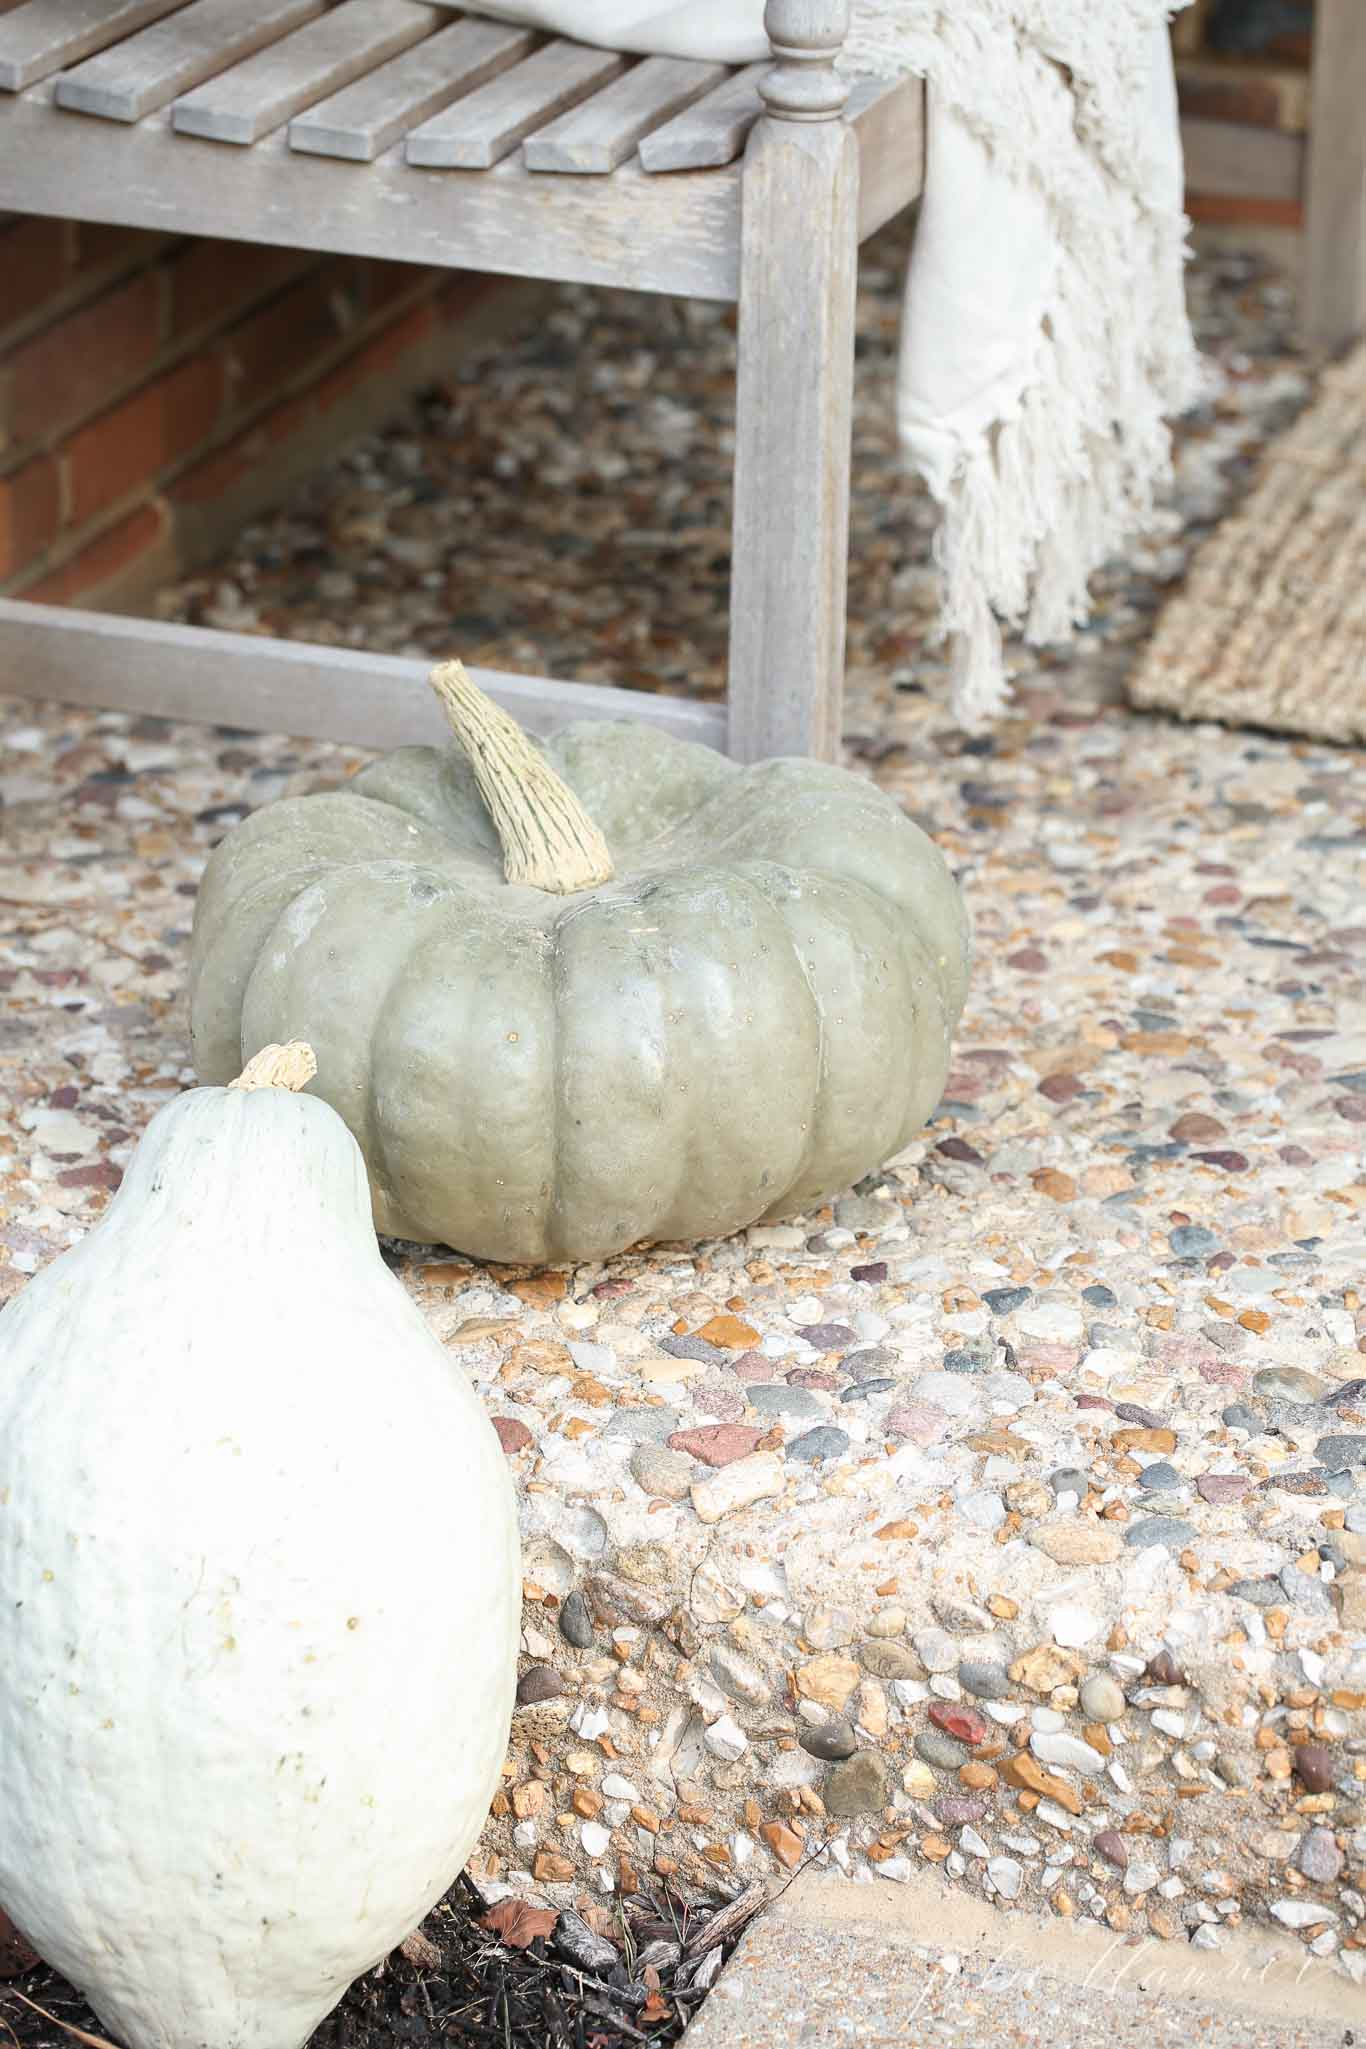 Heirloom pumpkin and squash are traditional fall porch decor staples